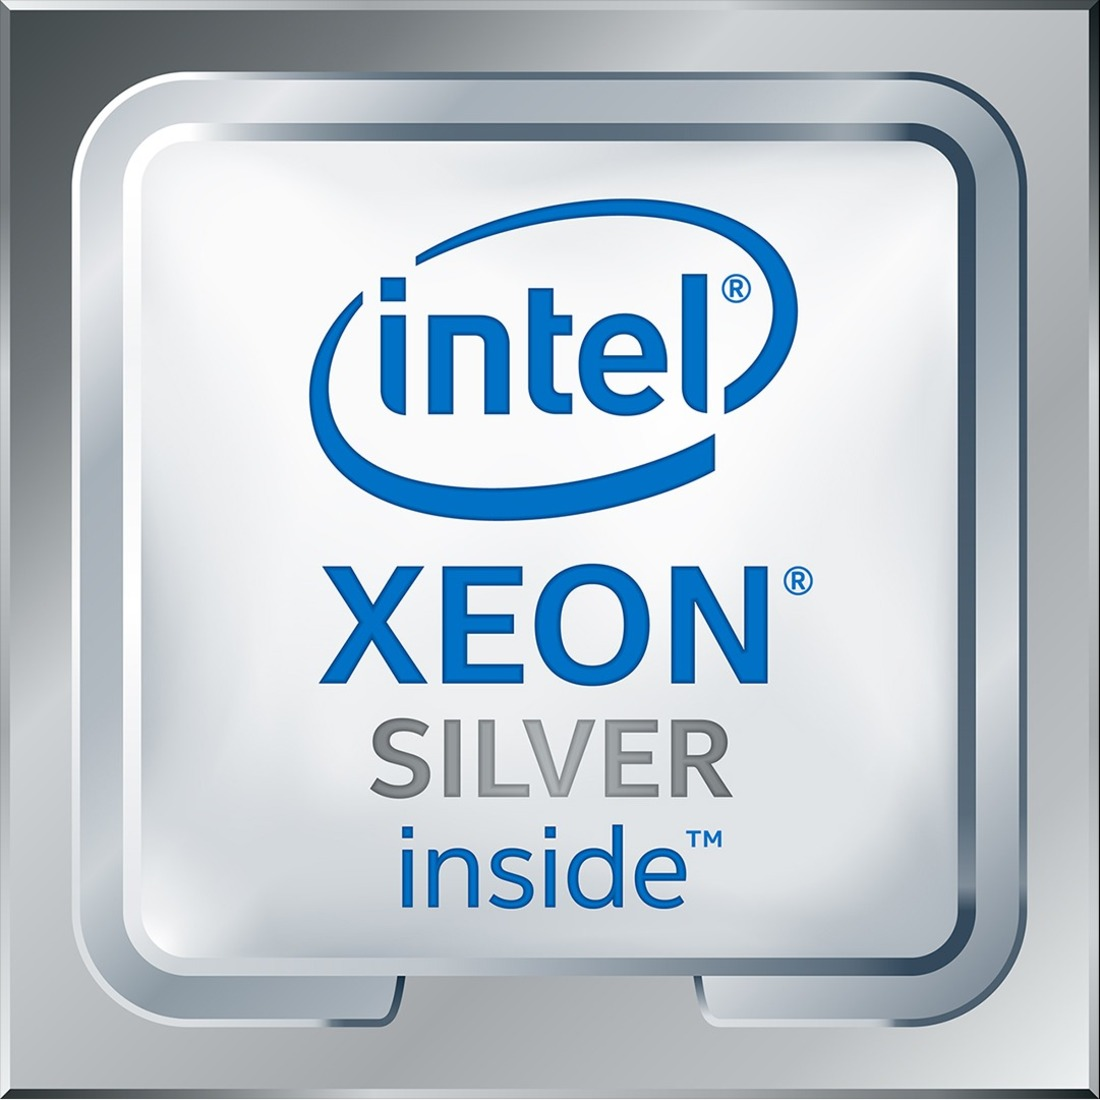 HPE DL380 Gen10 Intel Xeon-Silver 4214 (2.2GHz/12-core/85W) Processor Kit P02493-B21